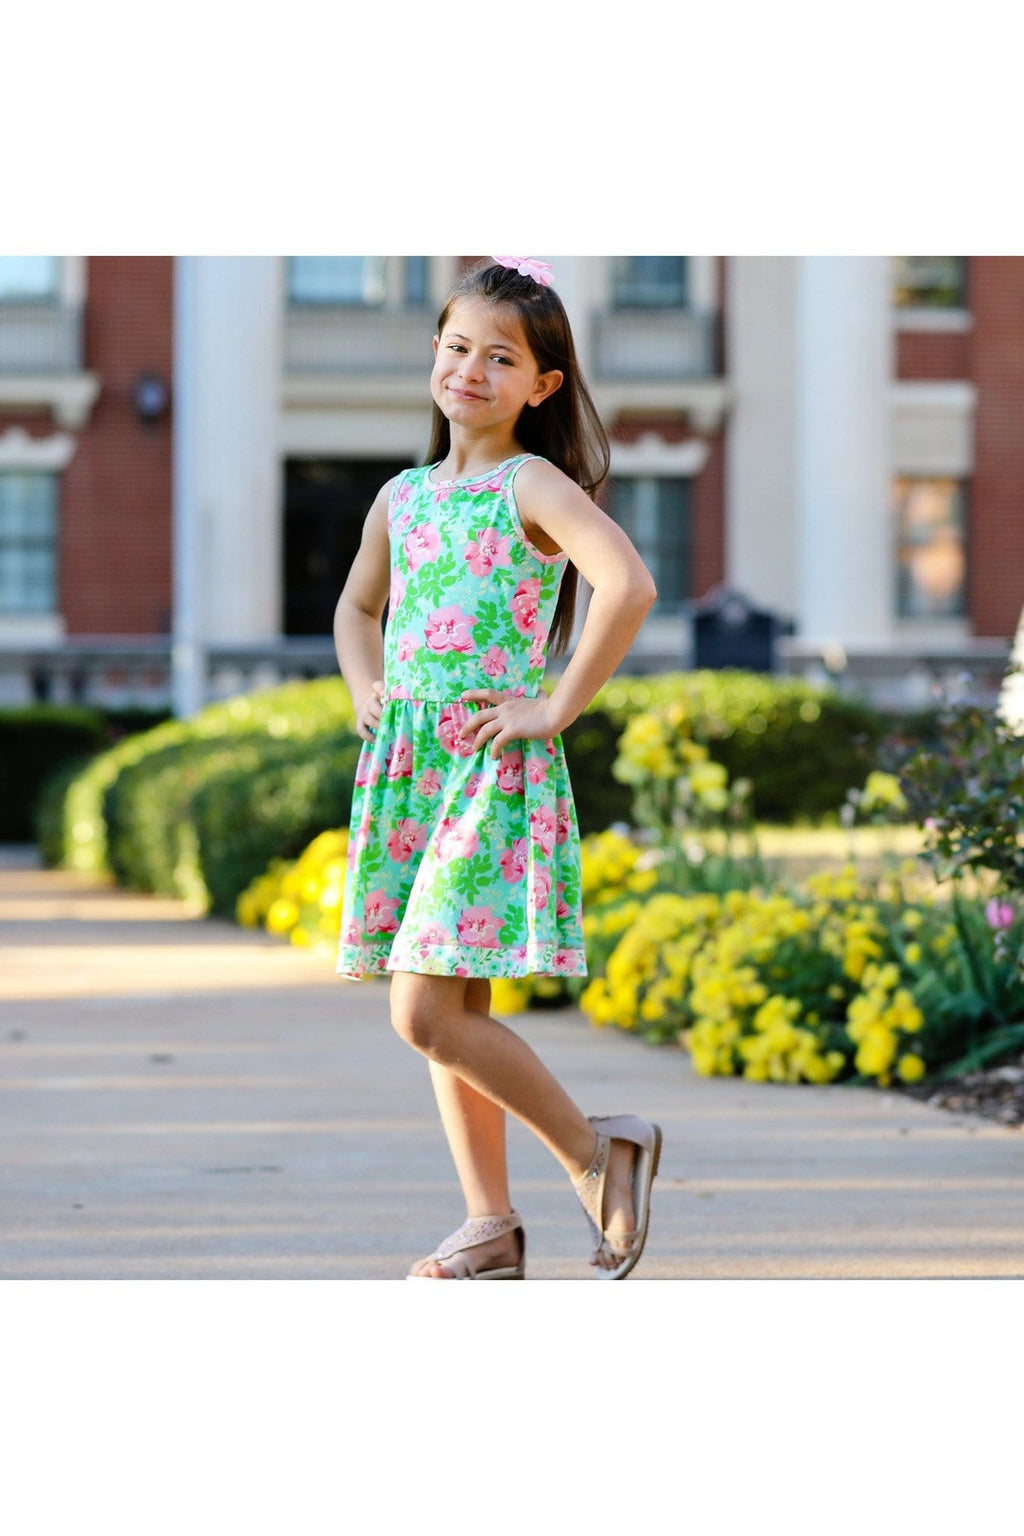 AnnLoren Little & Big Girls Spring Easter Floral Roses Sleeveless Dress Boutique Clothing Sizes 2/3T - 11/12 - Himelhoch's